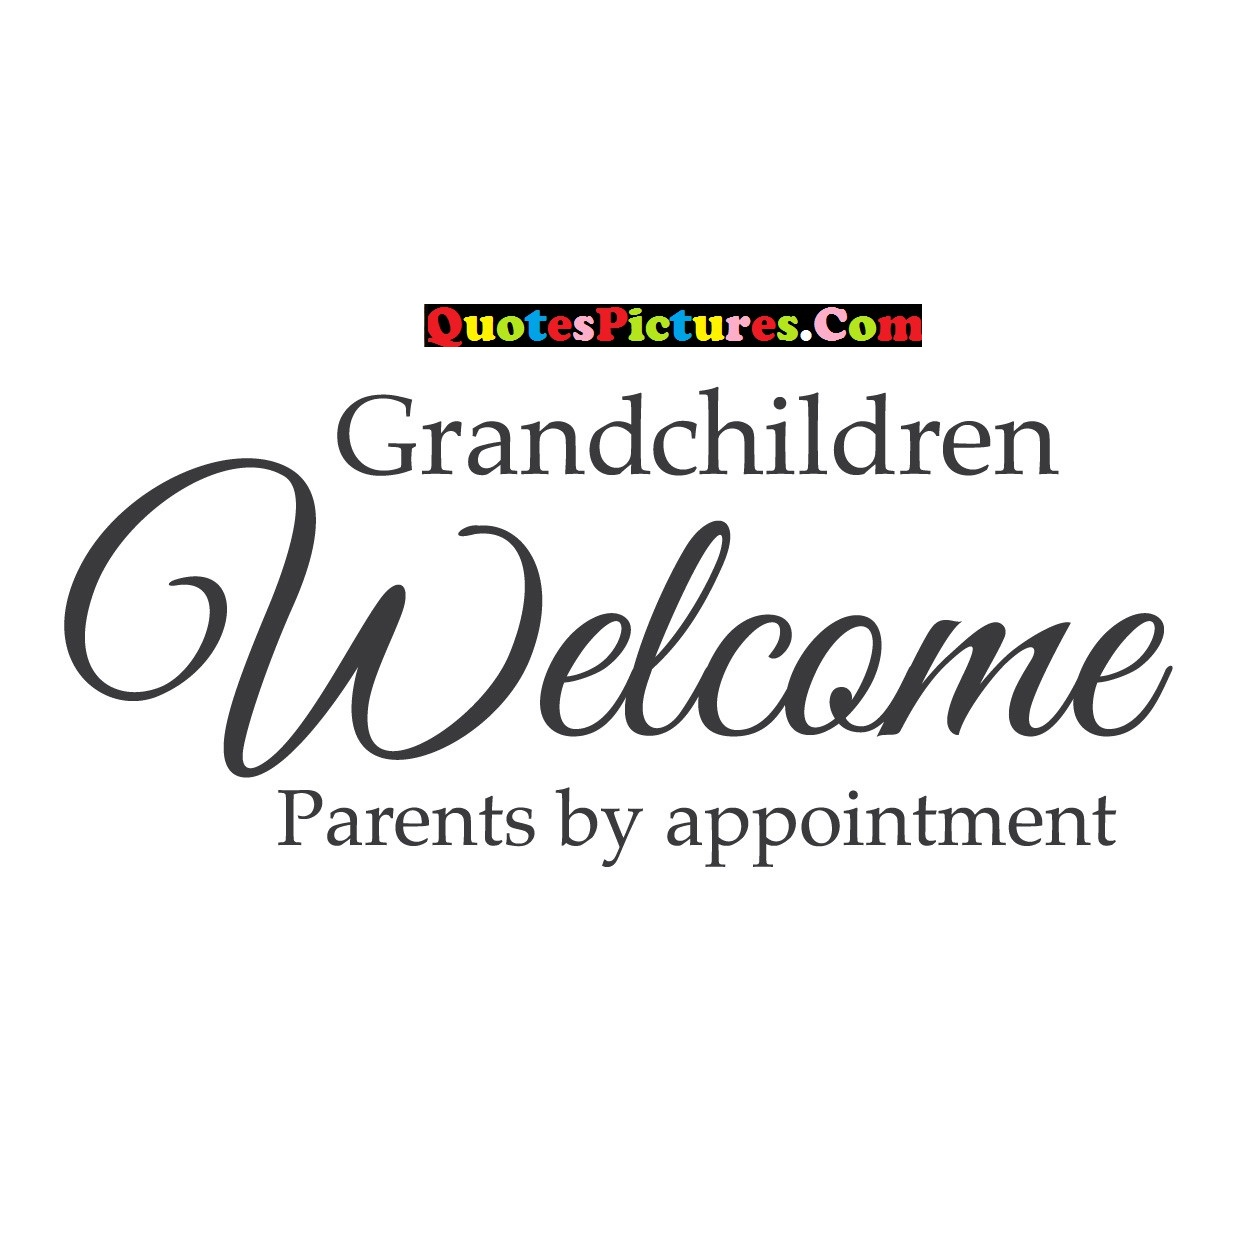 Grandmother Quote - Grandchildren Welcomer Parents By Appointment.